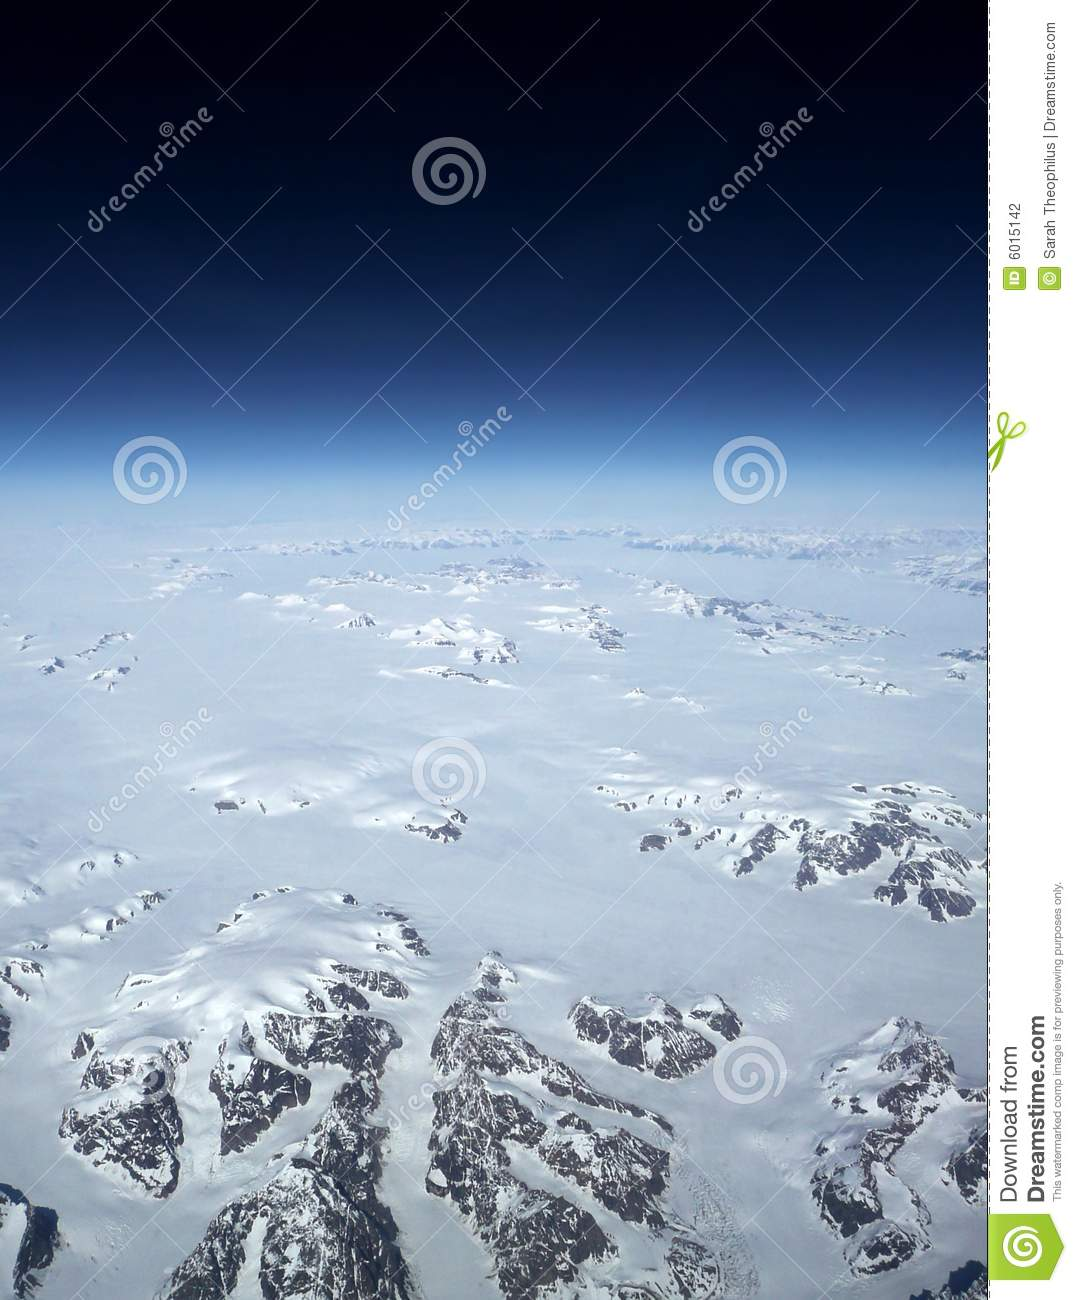 Greenland Climate Change